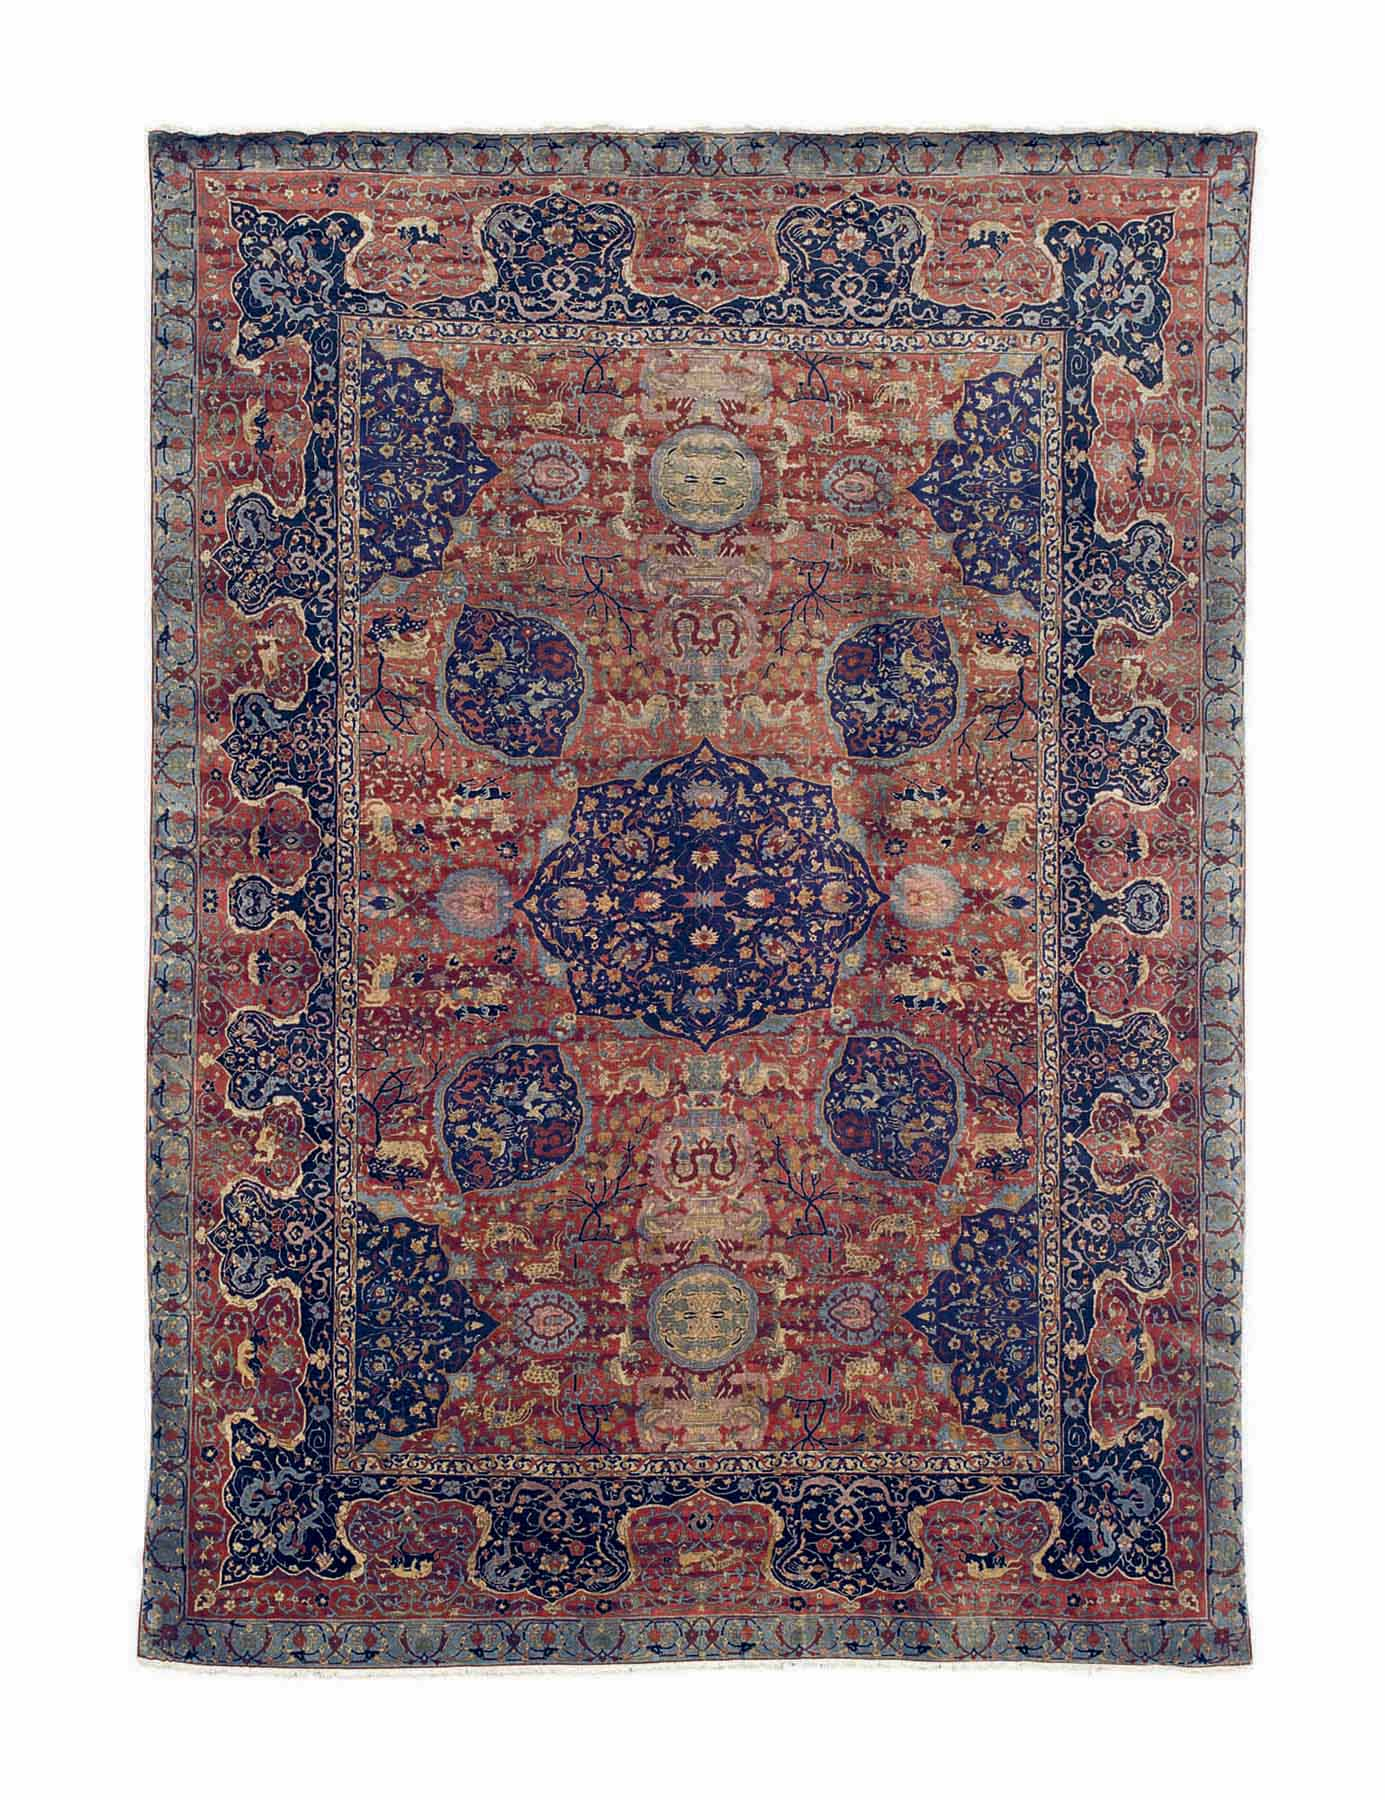 AN INDIAN CARPET